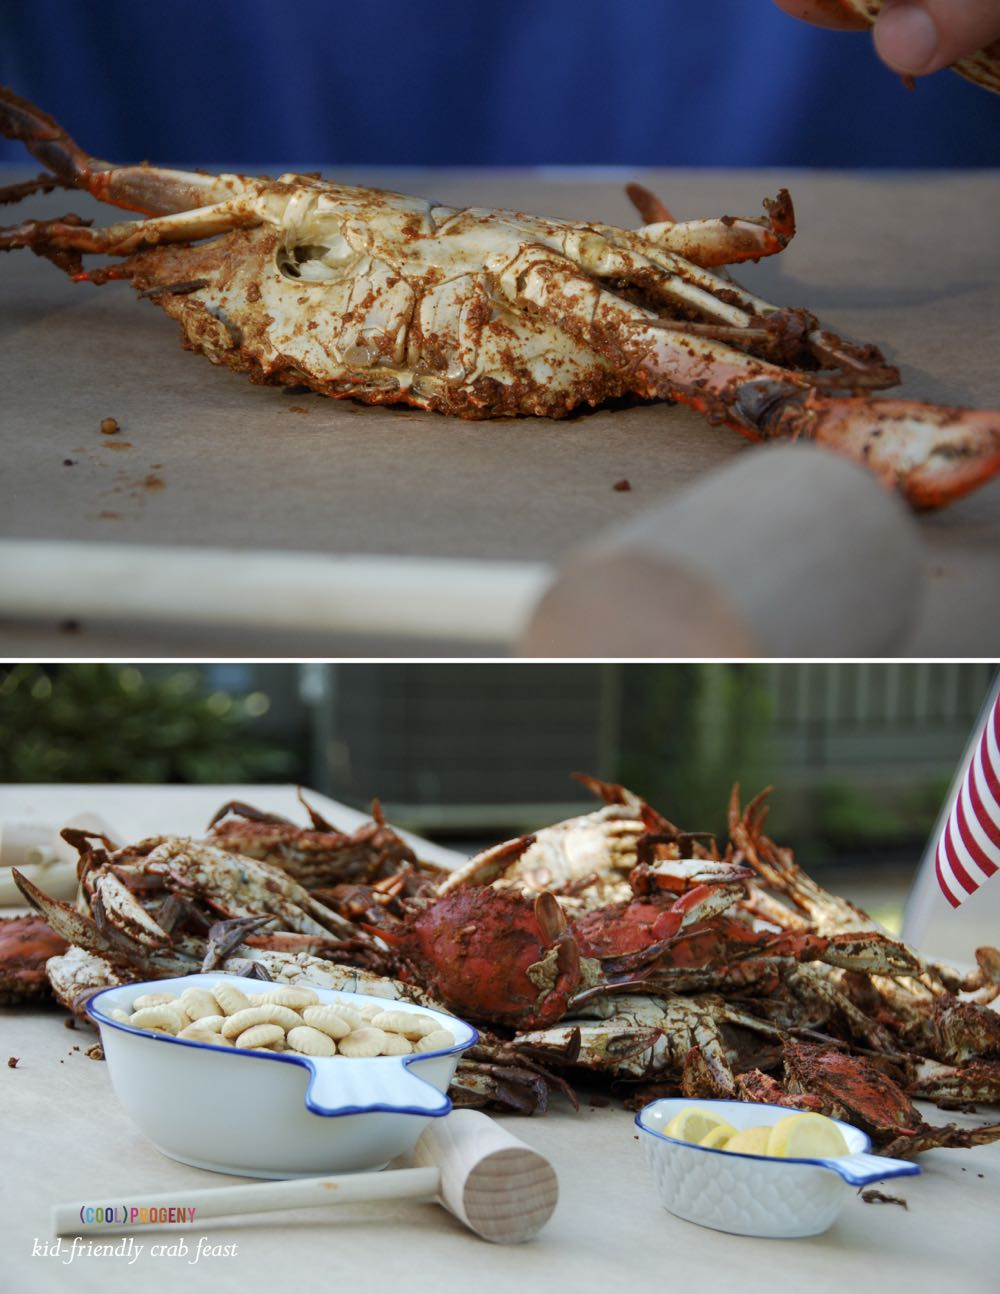 Kid-Friendly Crab Feast - (cool) progeny